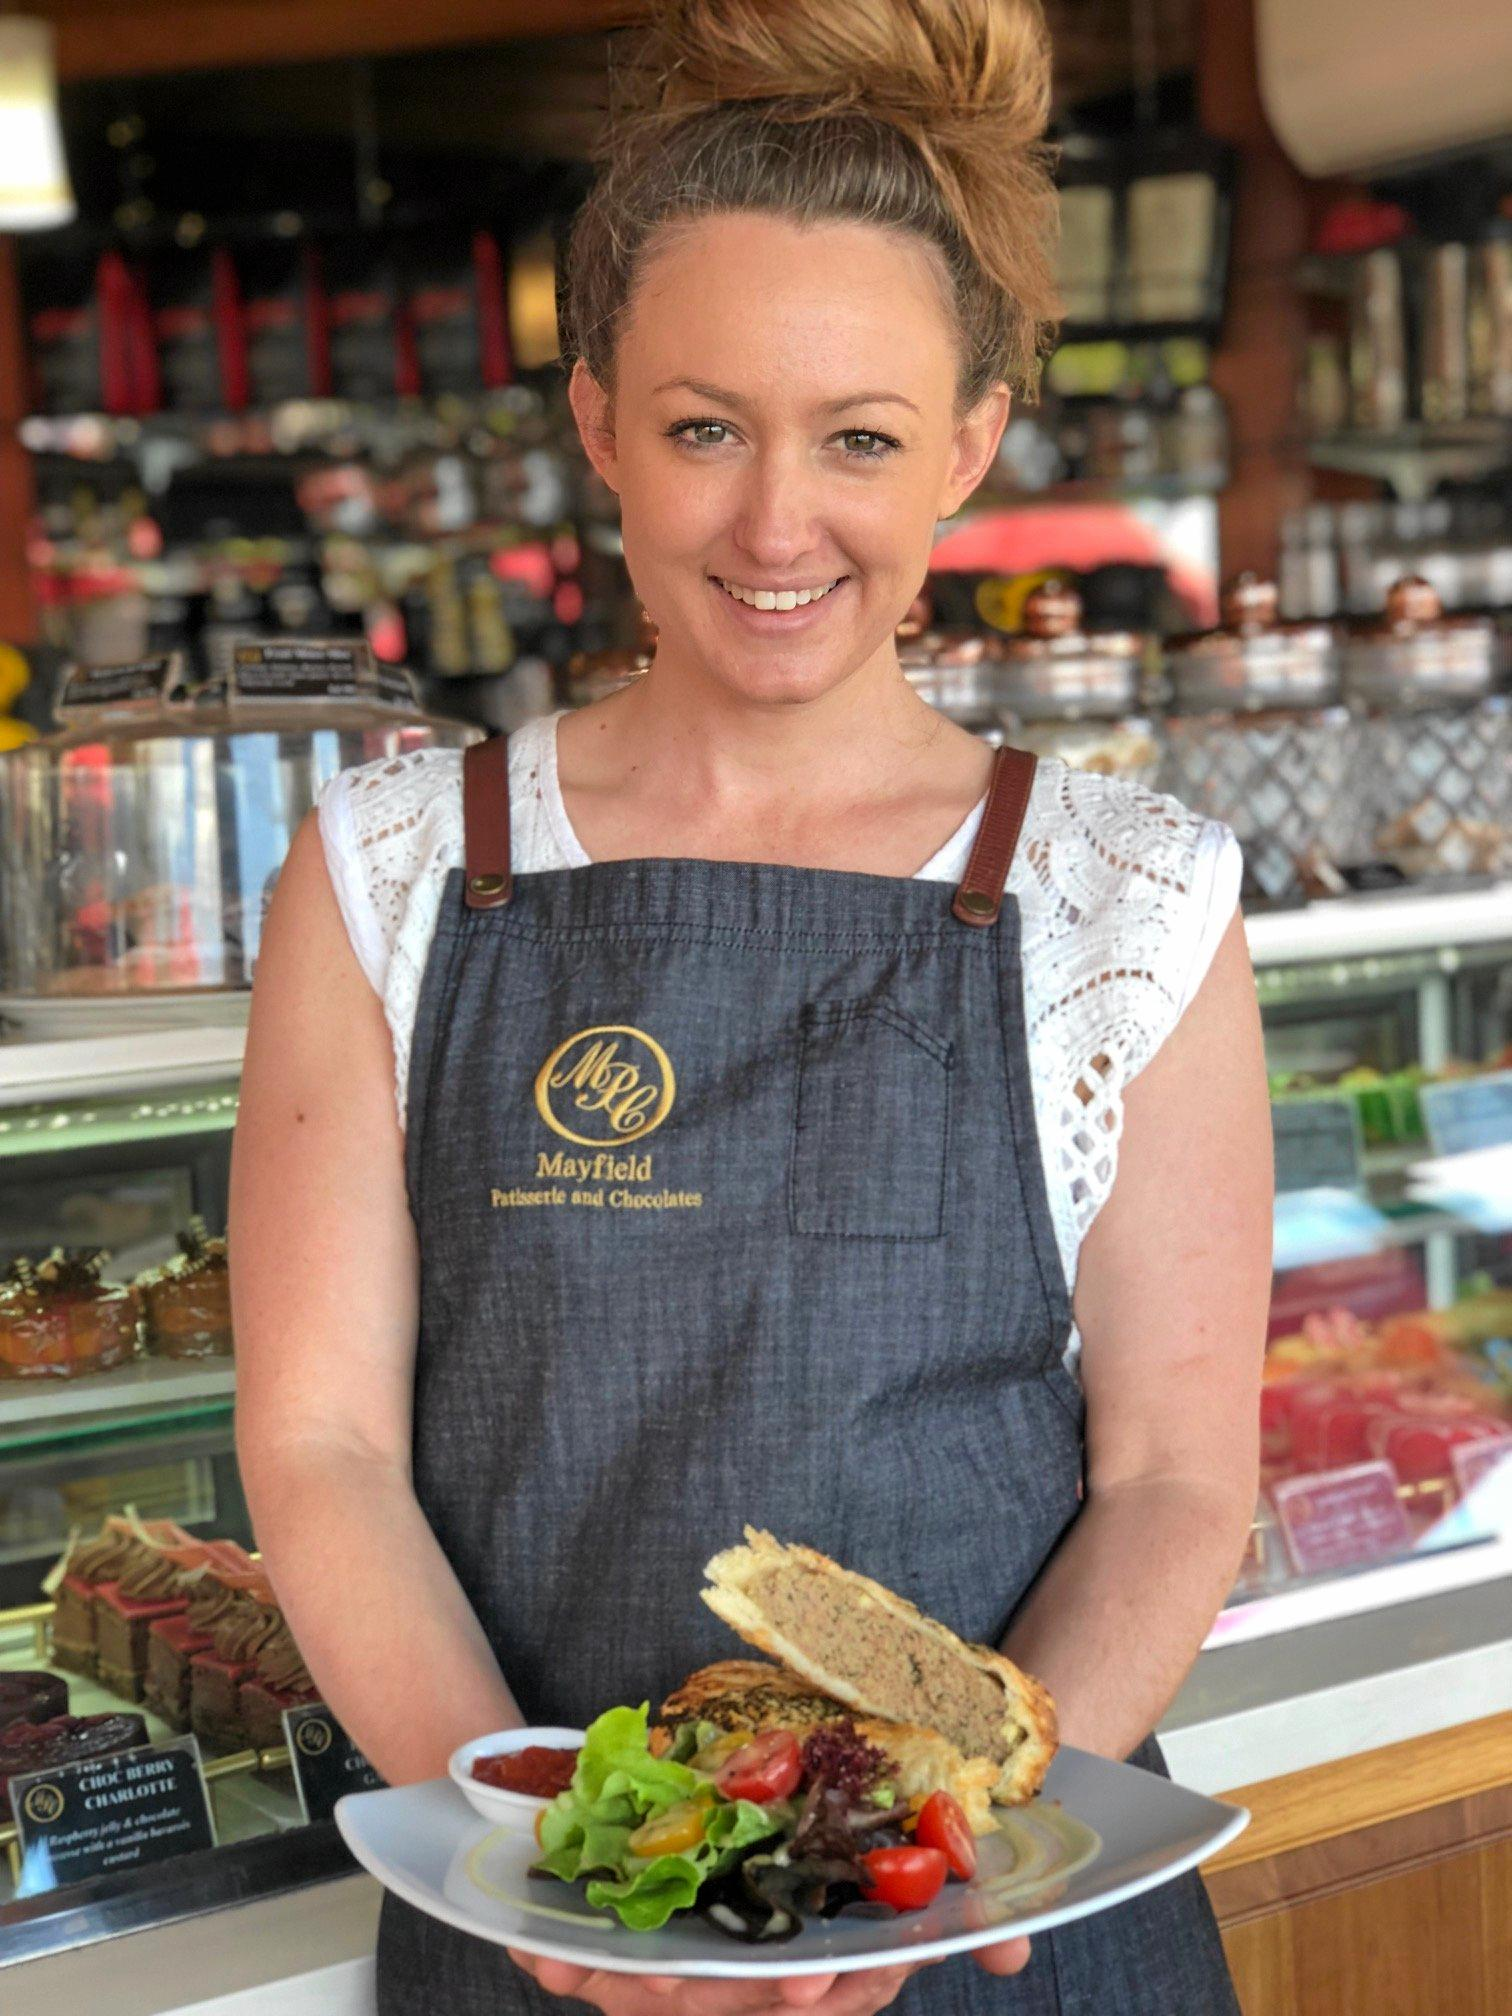 Mayfield Patisserie and Chocolates supervisor Rachel Greggery says a national award for the Montville business's lamb, spinach and feta sausage rolls will help bring more customers.